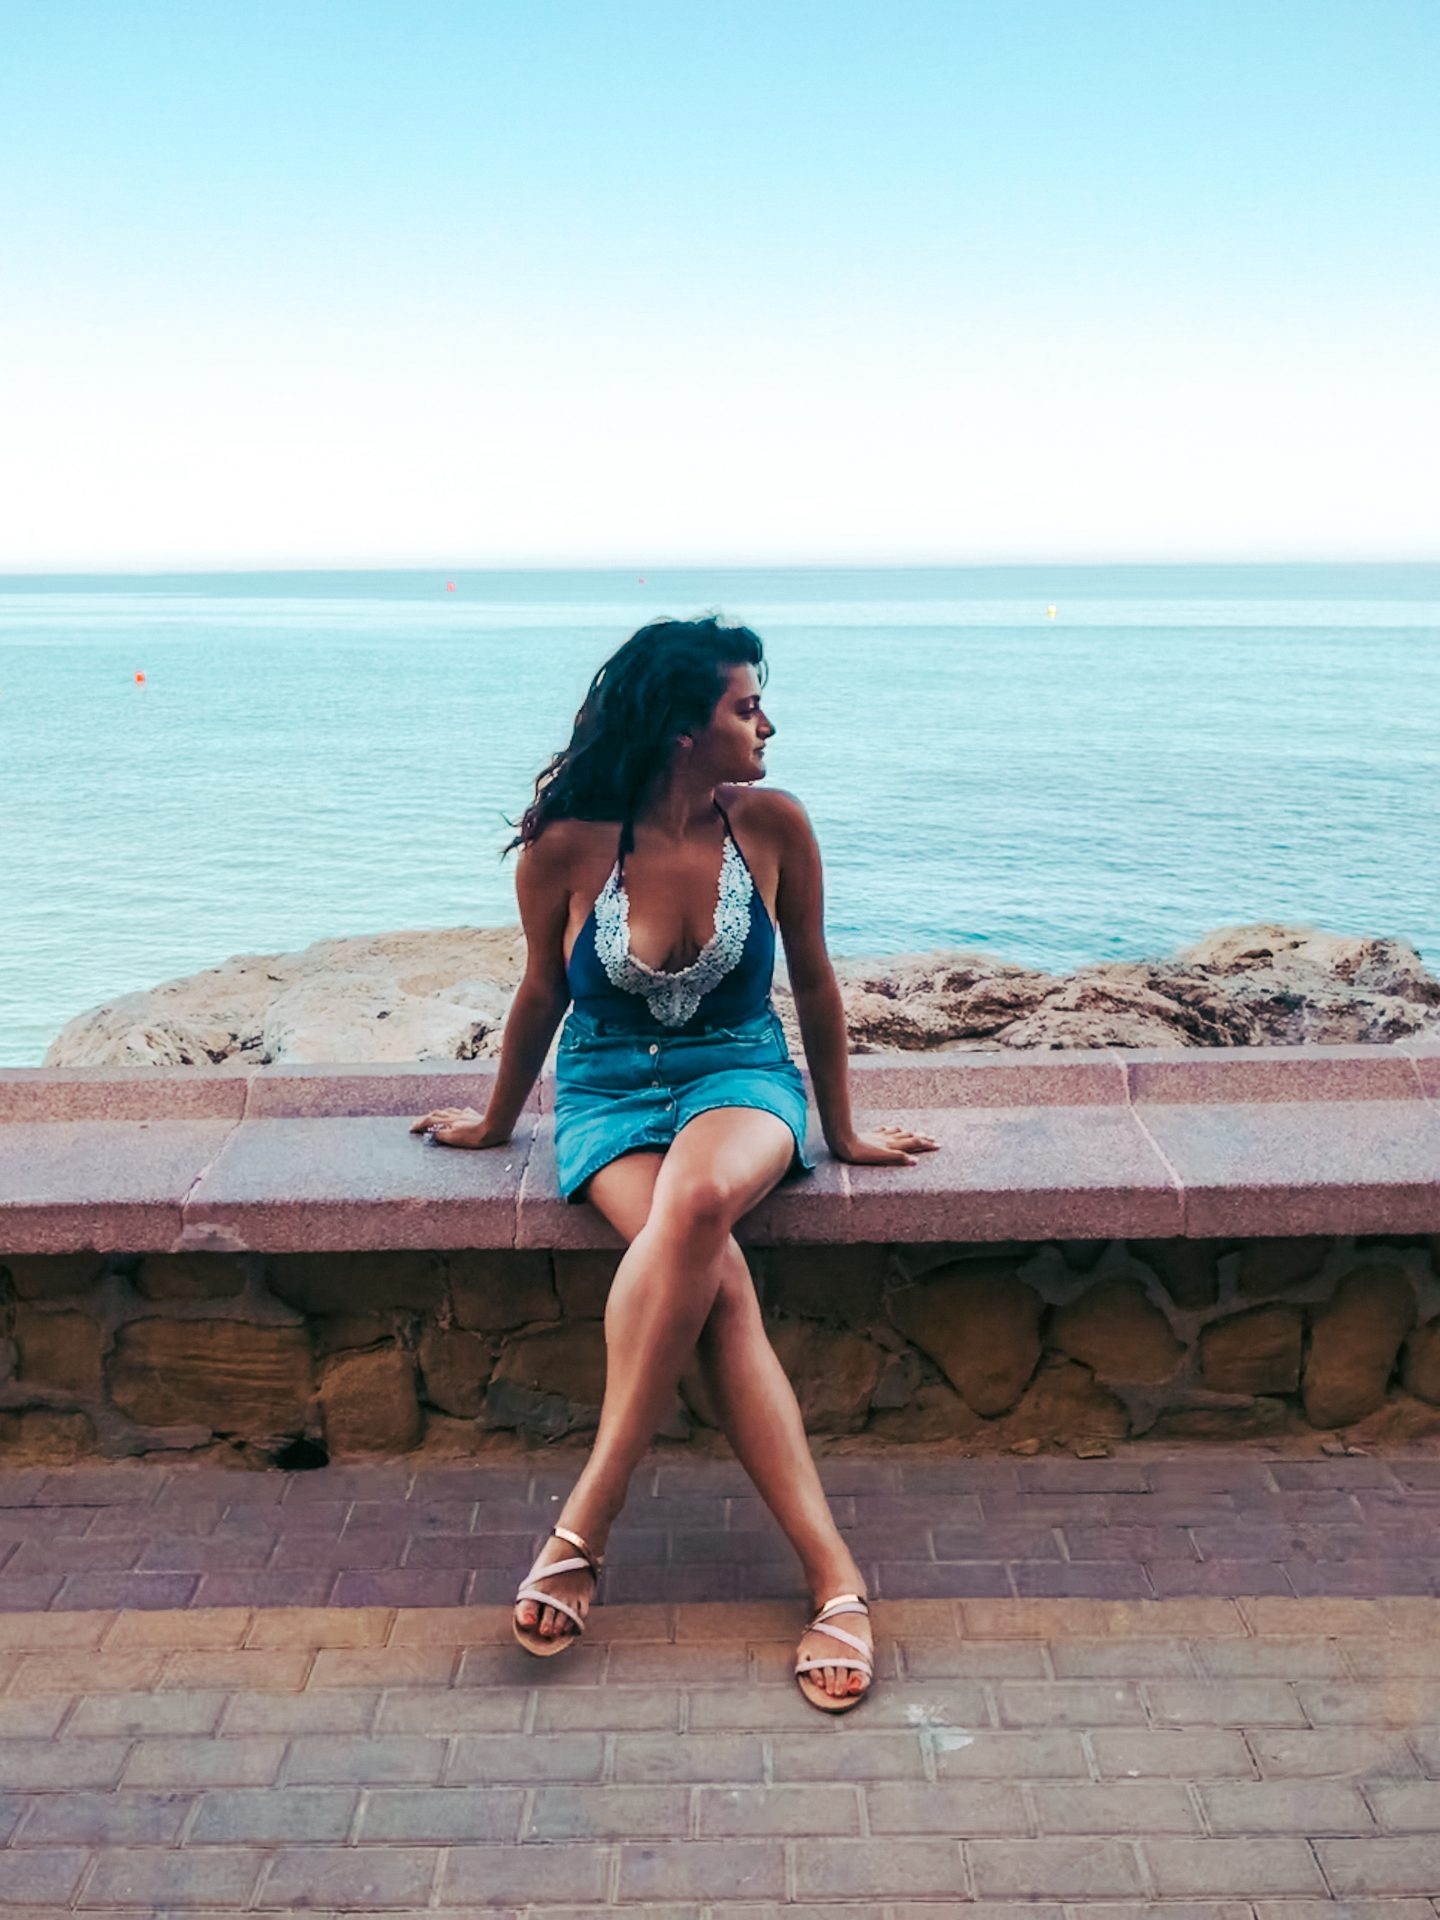 A Travel Blogger Thoughts About The Coronavirus (COVID-19)